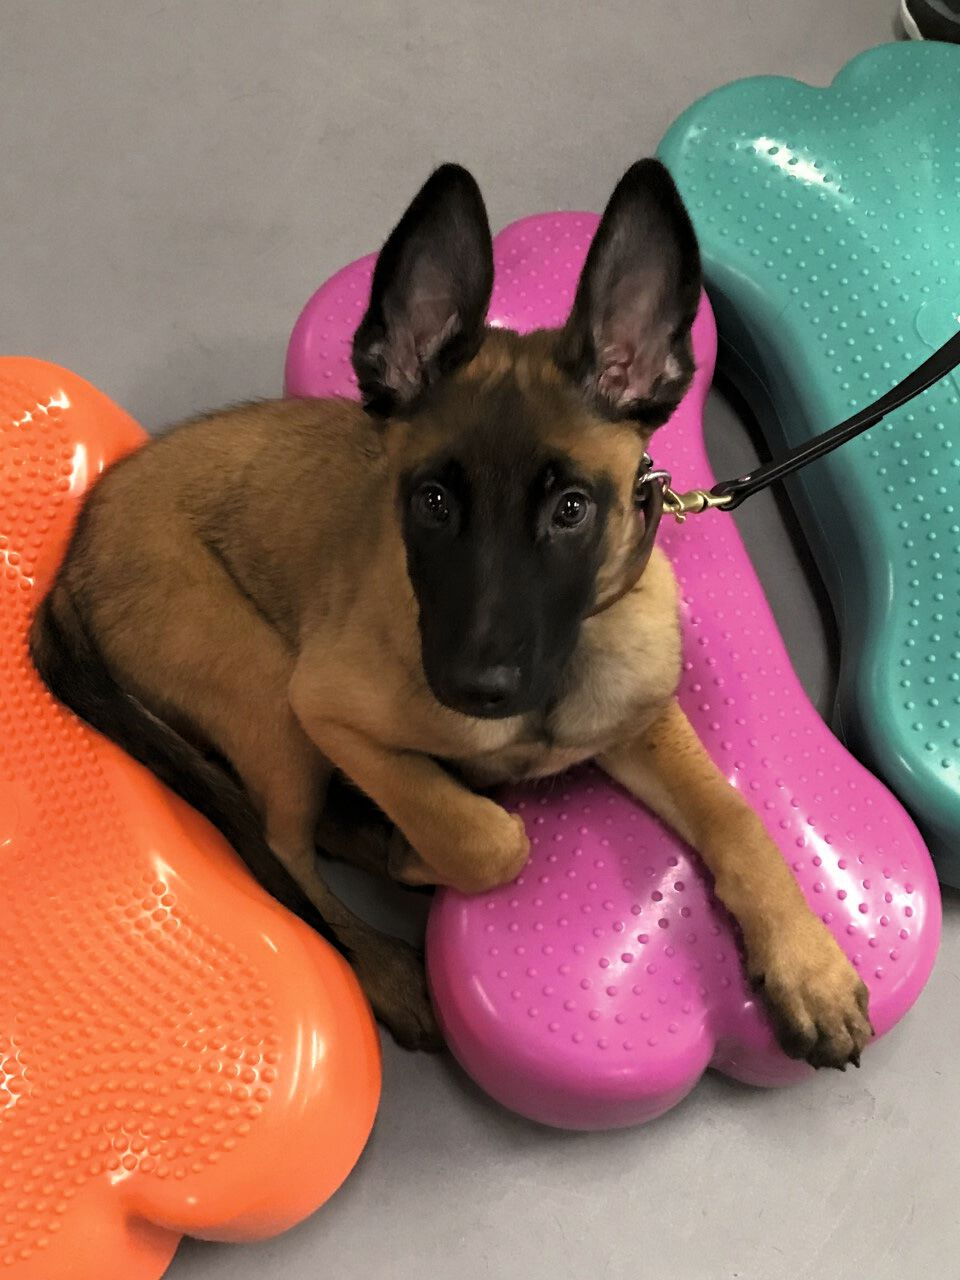 A US military working dog puppy finds inflatable proprioceptive devices quite comfortable during an exercise break.